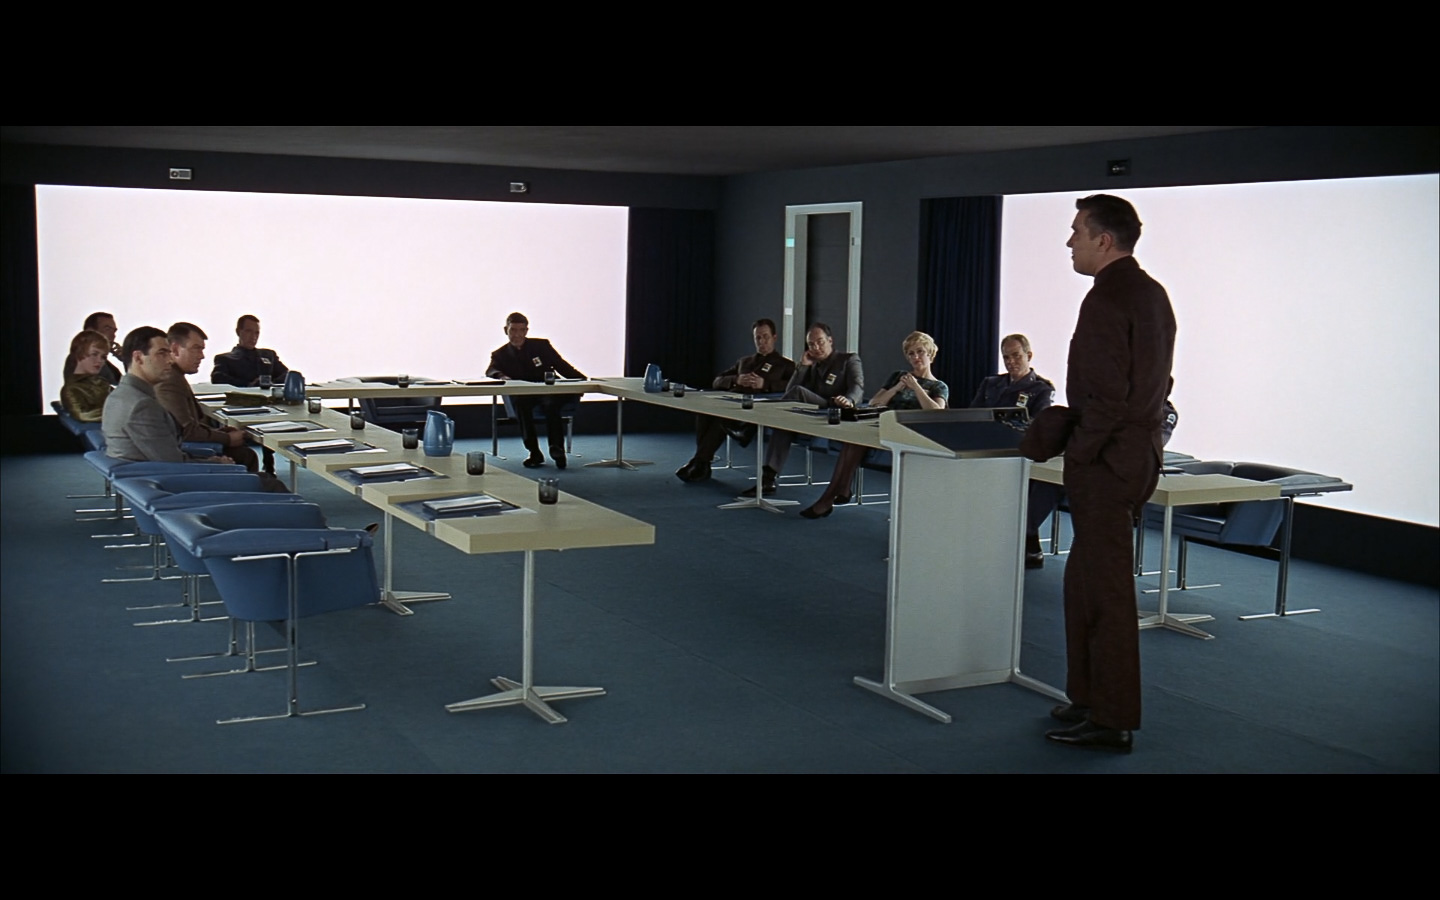 space odyssey - camera work - war room-2